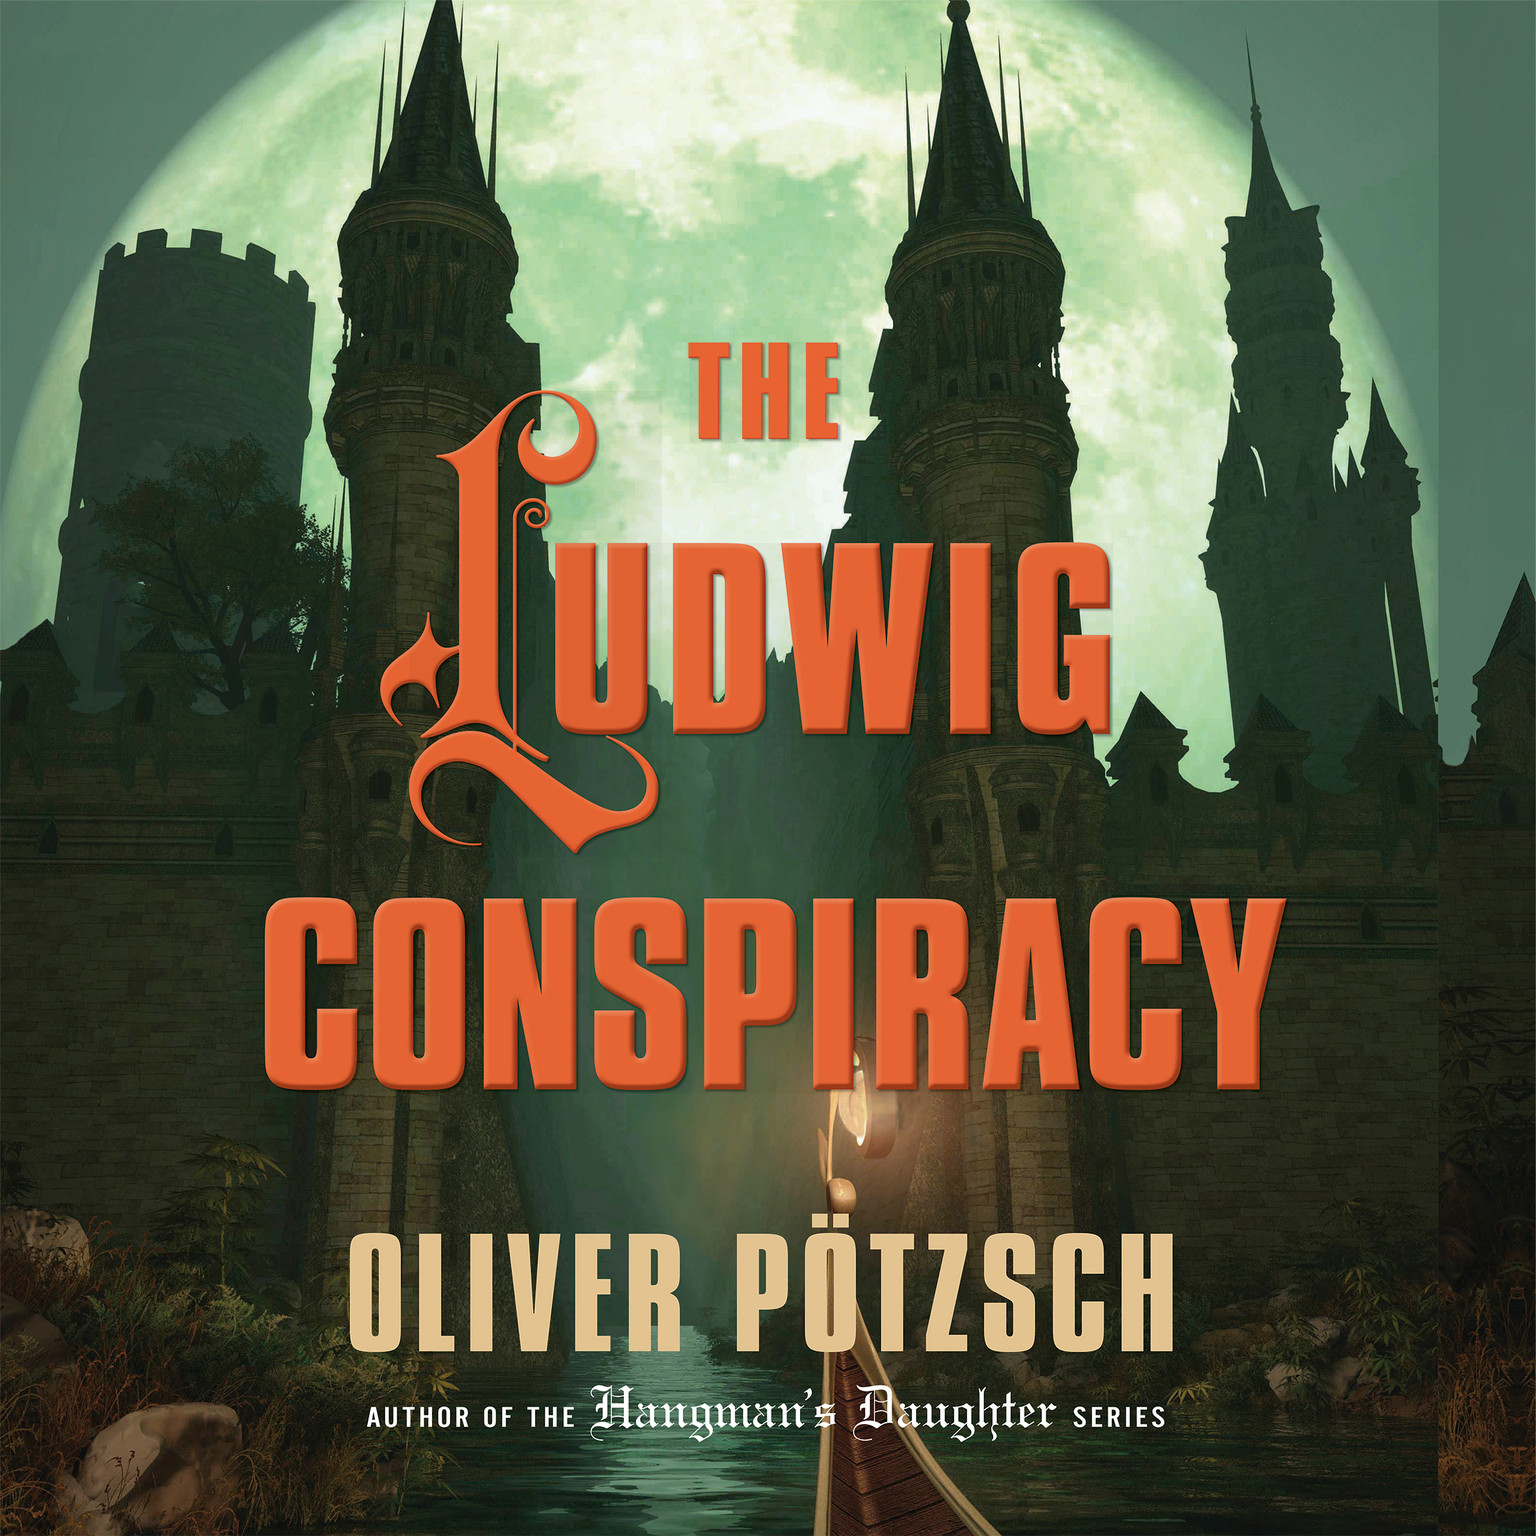 Printable The Ludwig Conspiracy Audiobook Cover Art